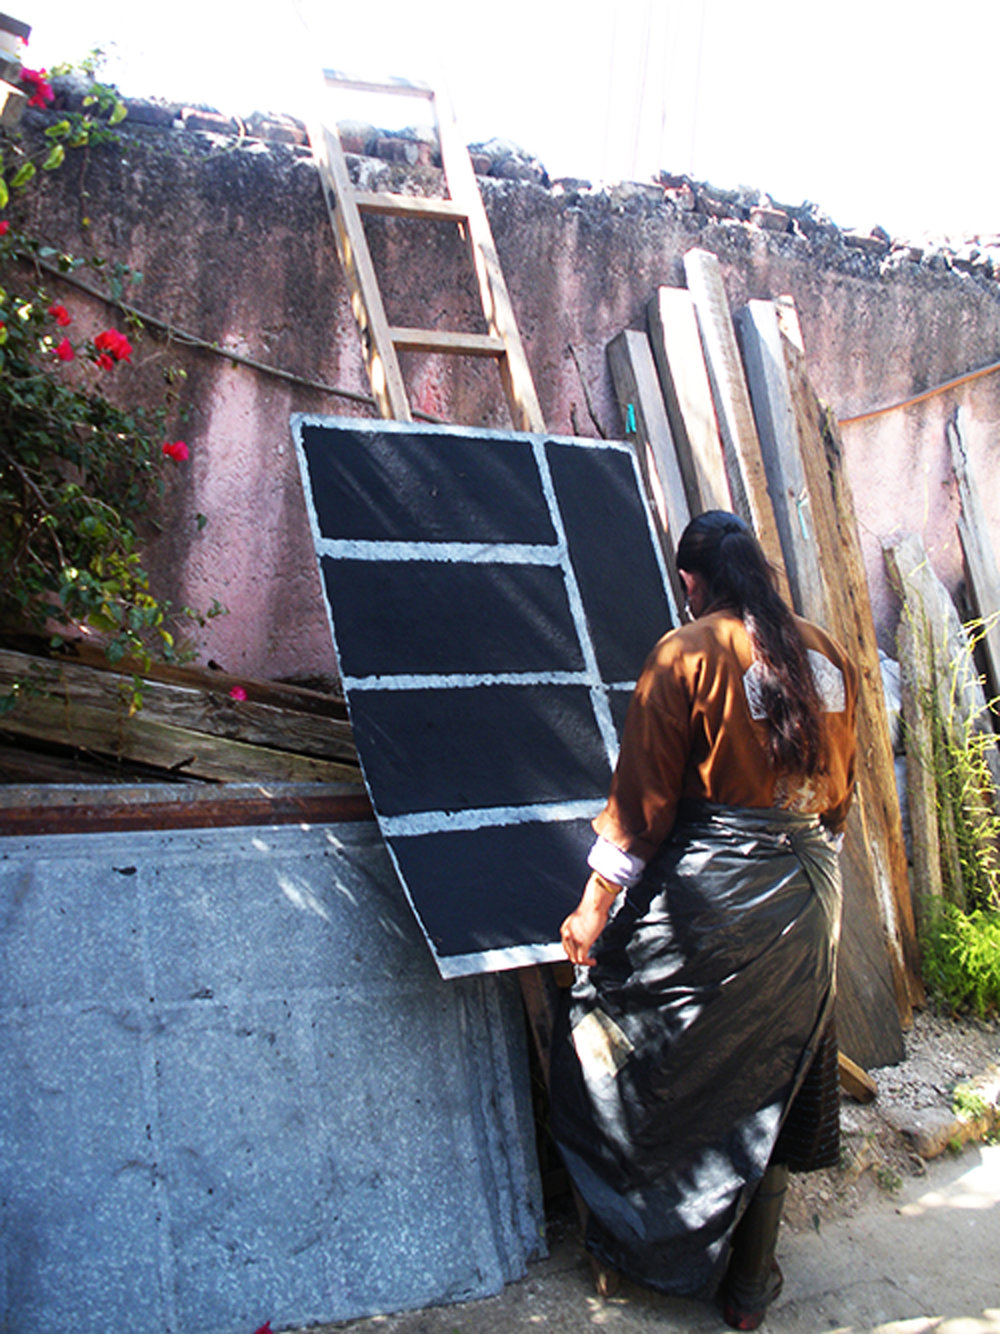 Wet paper is 'couched' onto metal sheets which are then hauled onto the flat roof to dry in the hot Mexican sun.